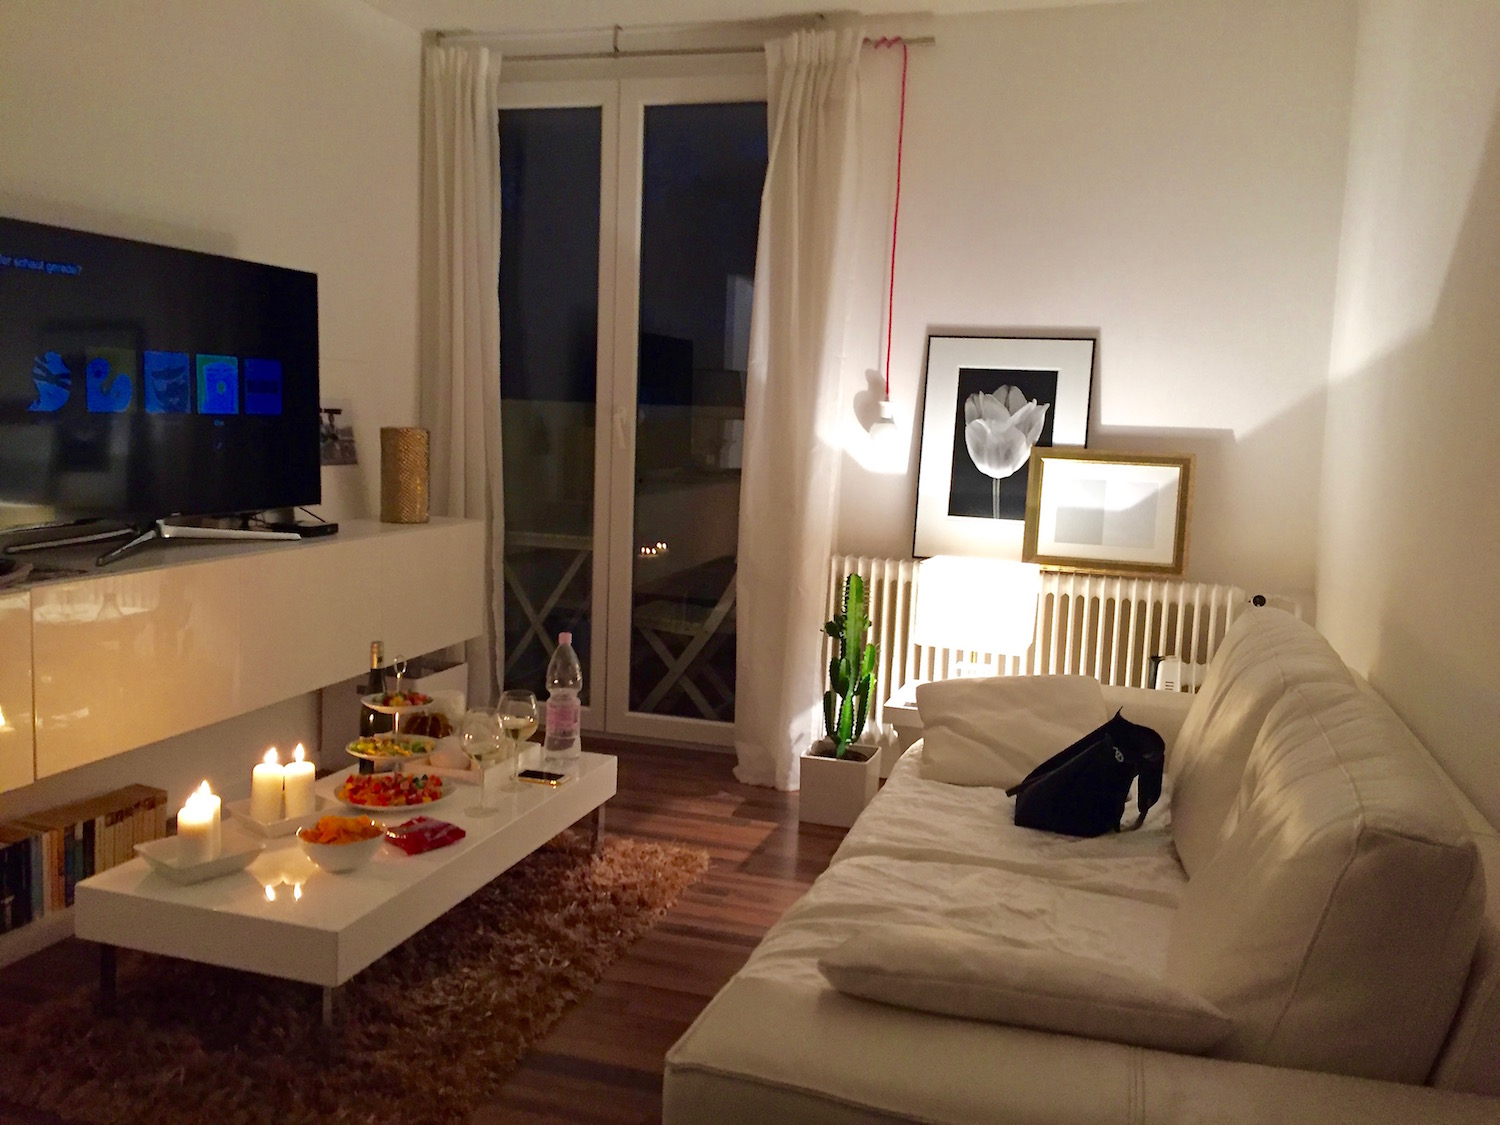 Unser AirBnB Apartment